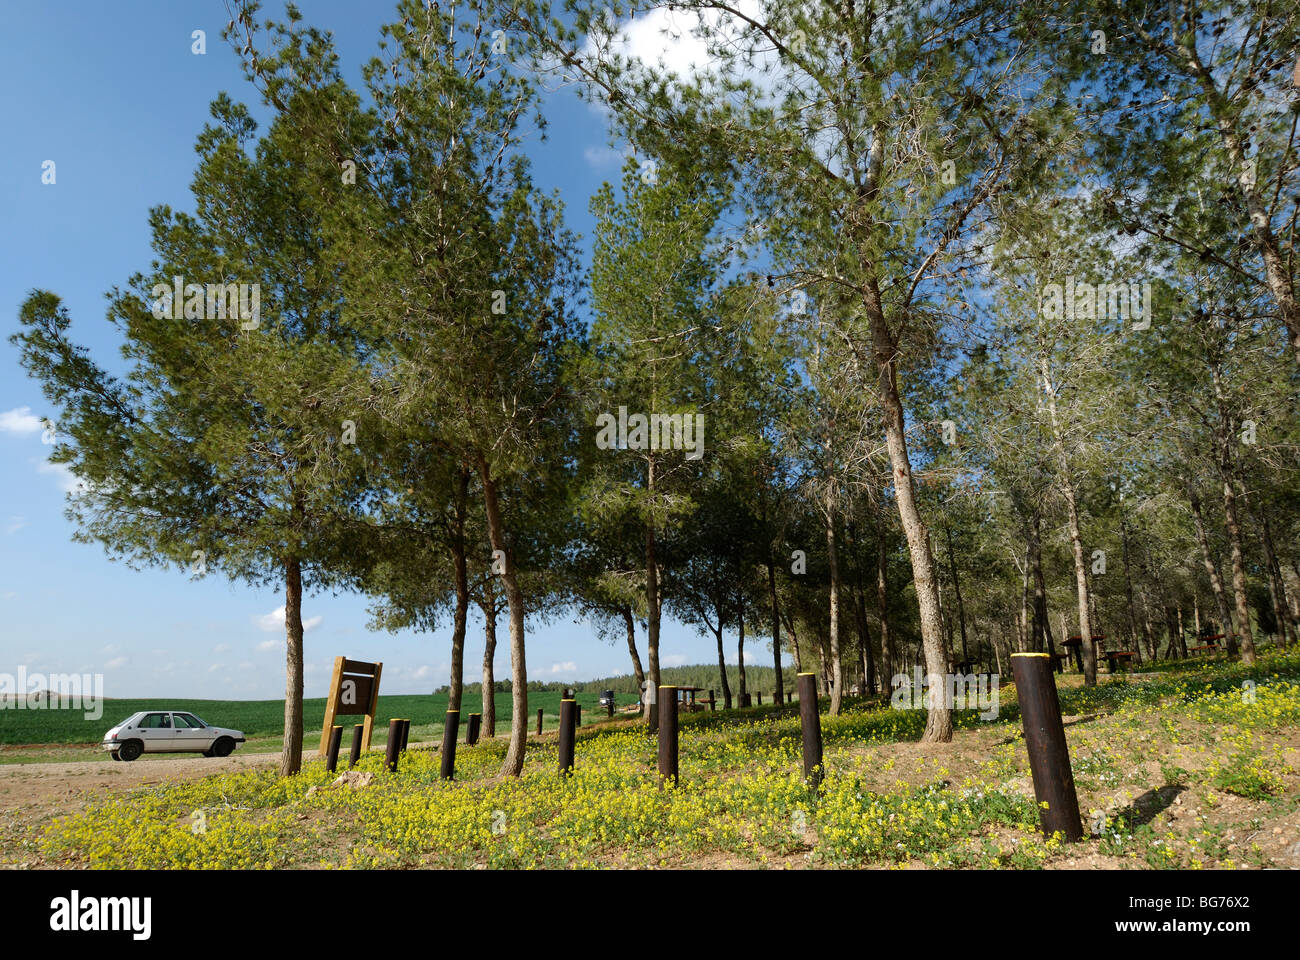 Israel, Negev, Pine tree forest planted by KKL - Stock Image